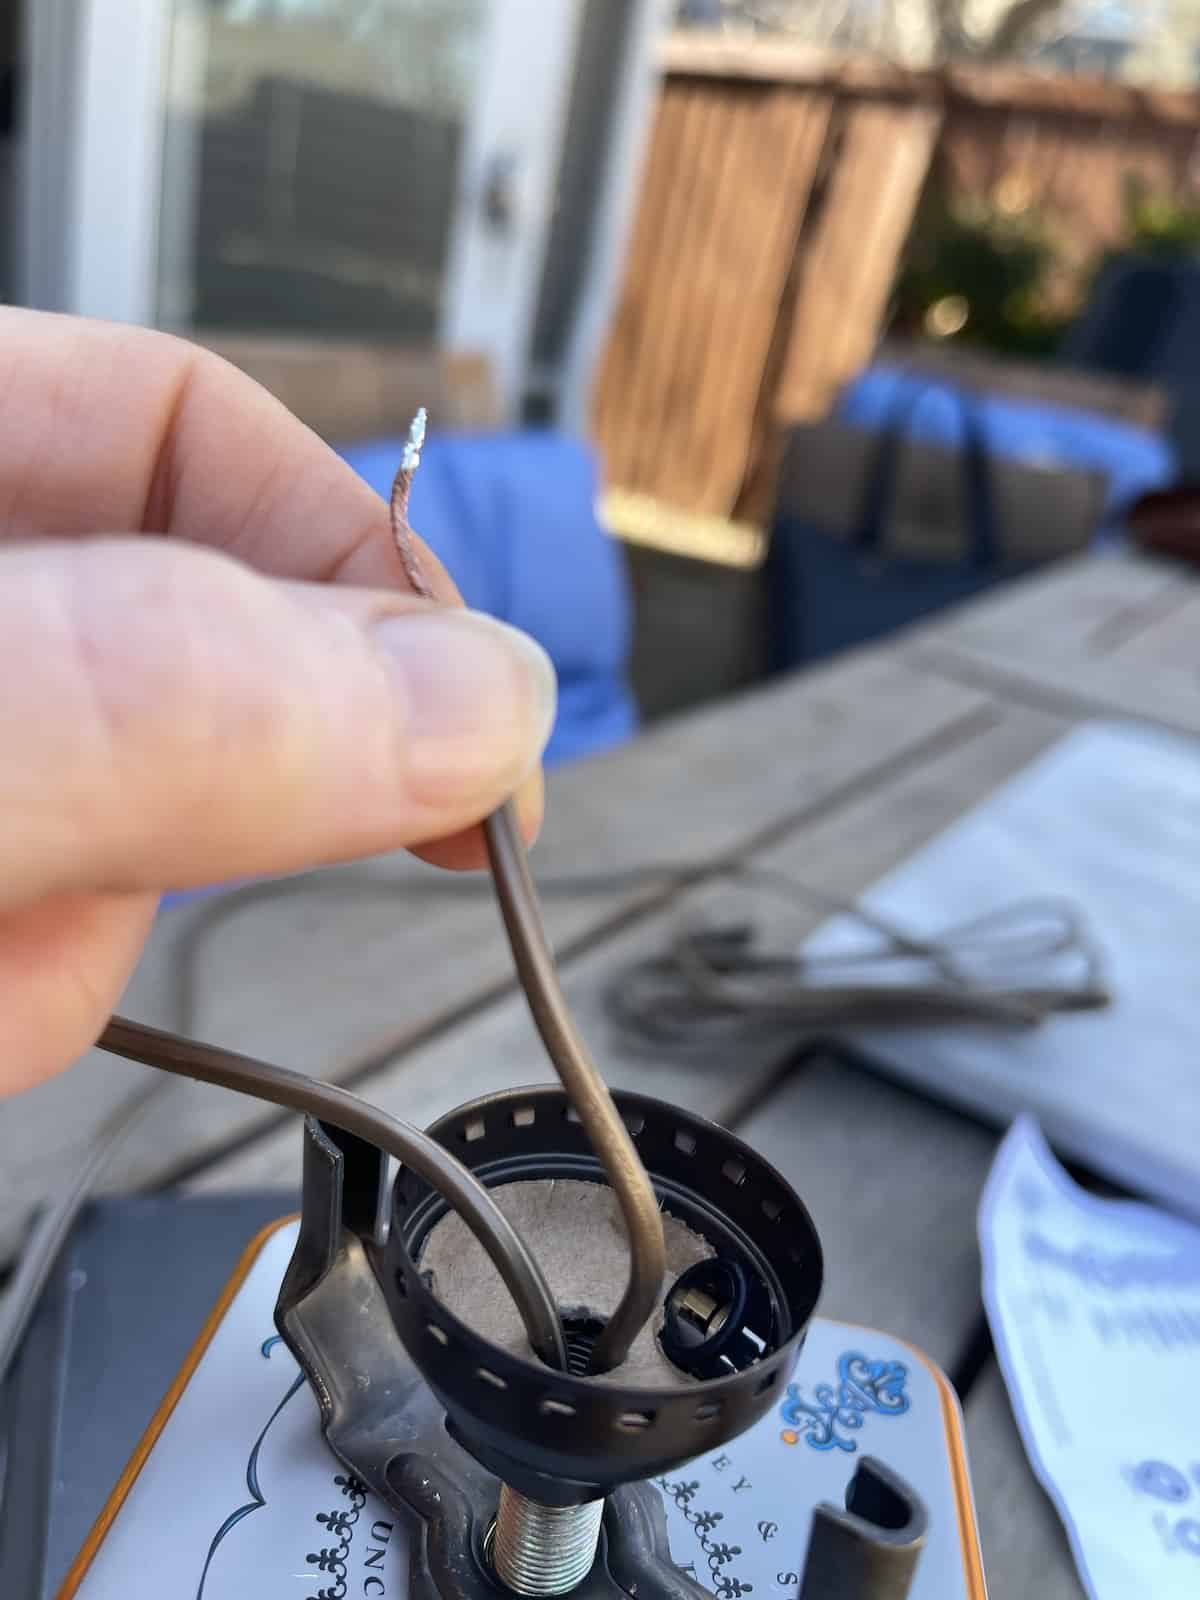 feed wires into the base